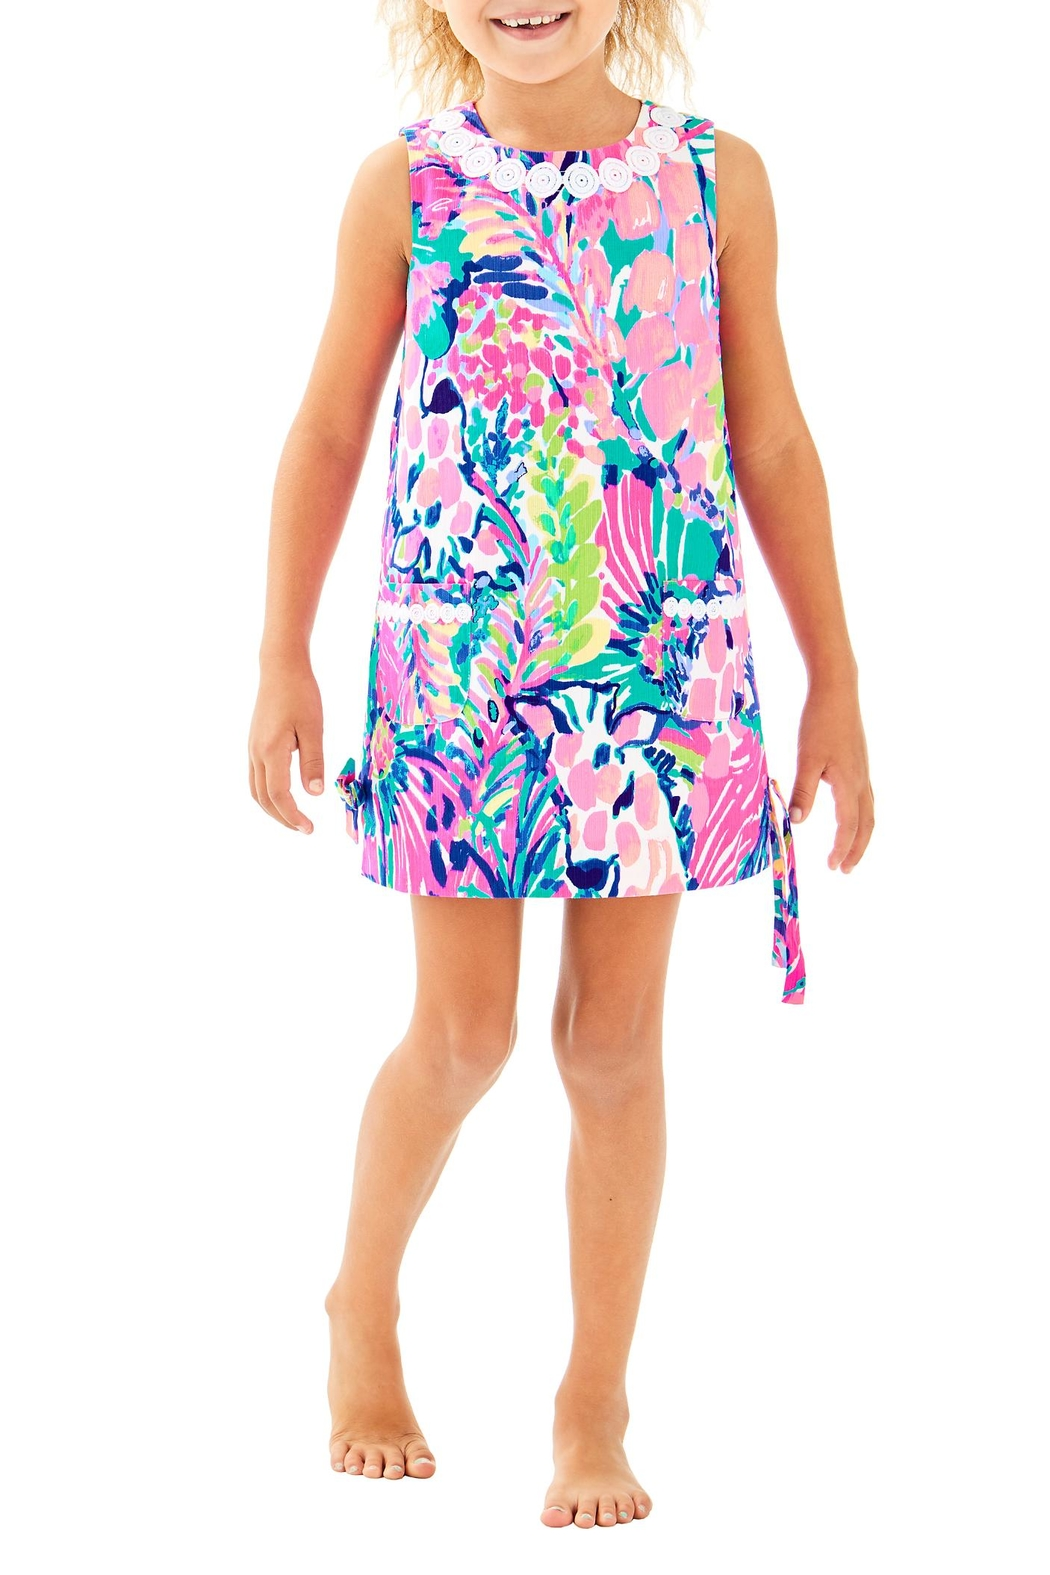 Lilly Pulitzer Girls Classic Shift - Main Image